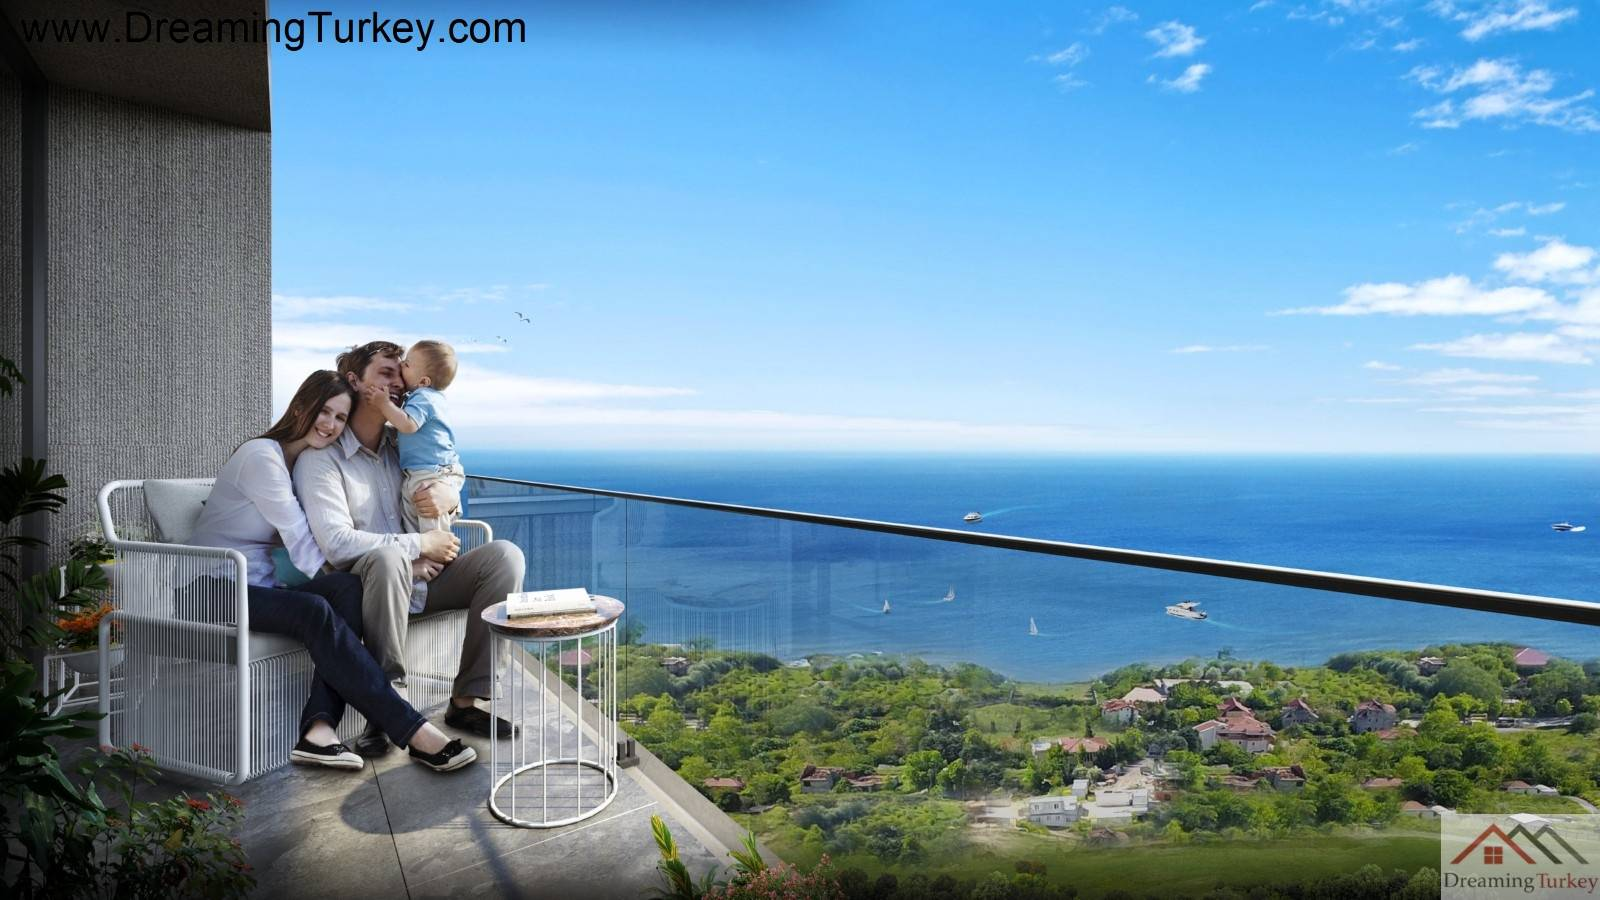 6-Bedroom Duplex with a Yard & 2 Living Room in a Complex Close to the Sea in Istanbul